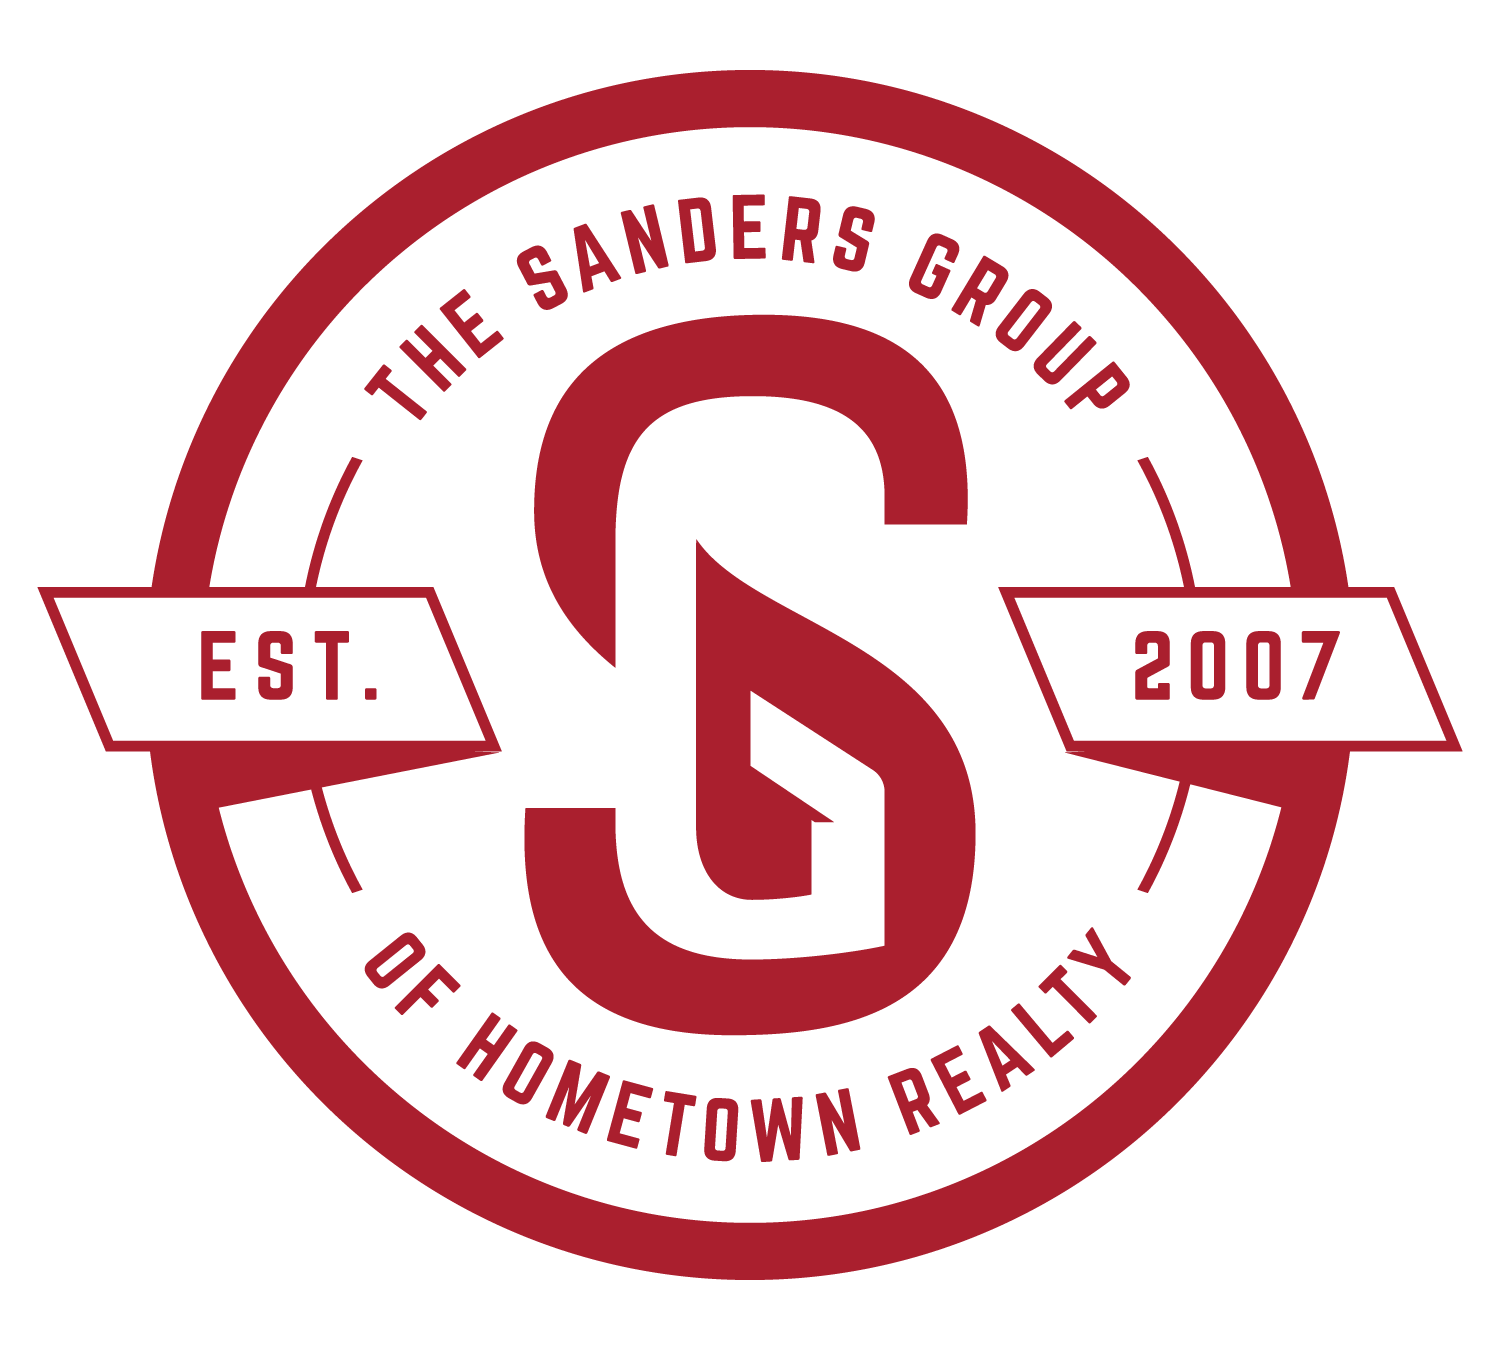 The Sanders Group of Hometown Realty